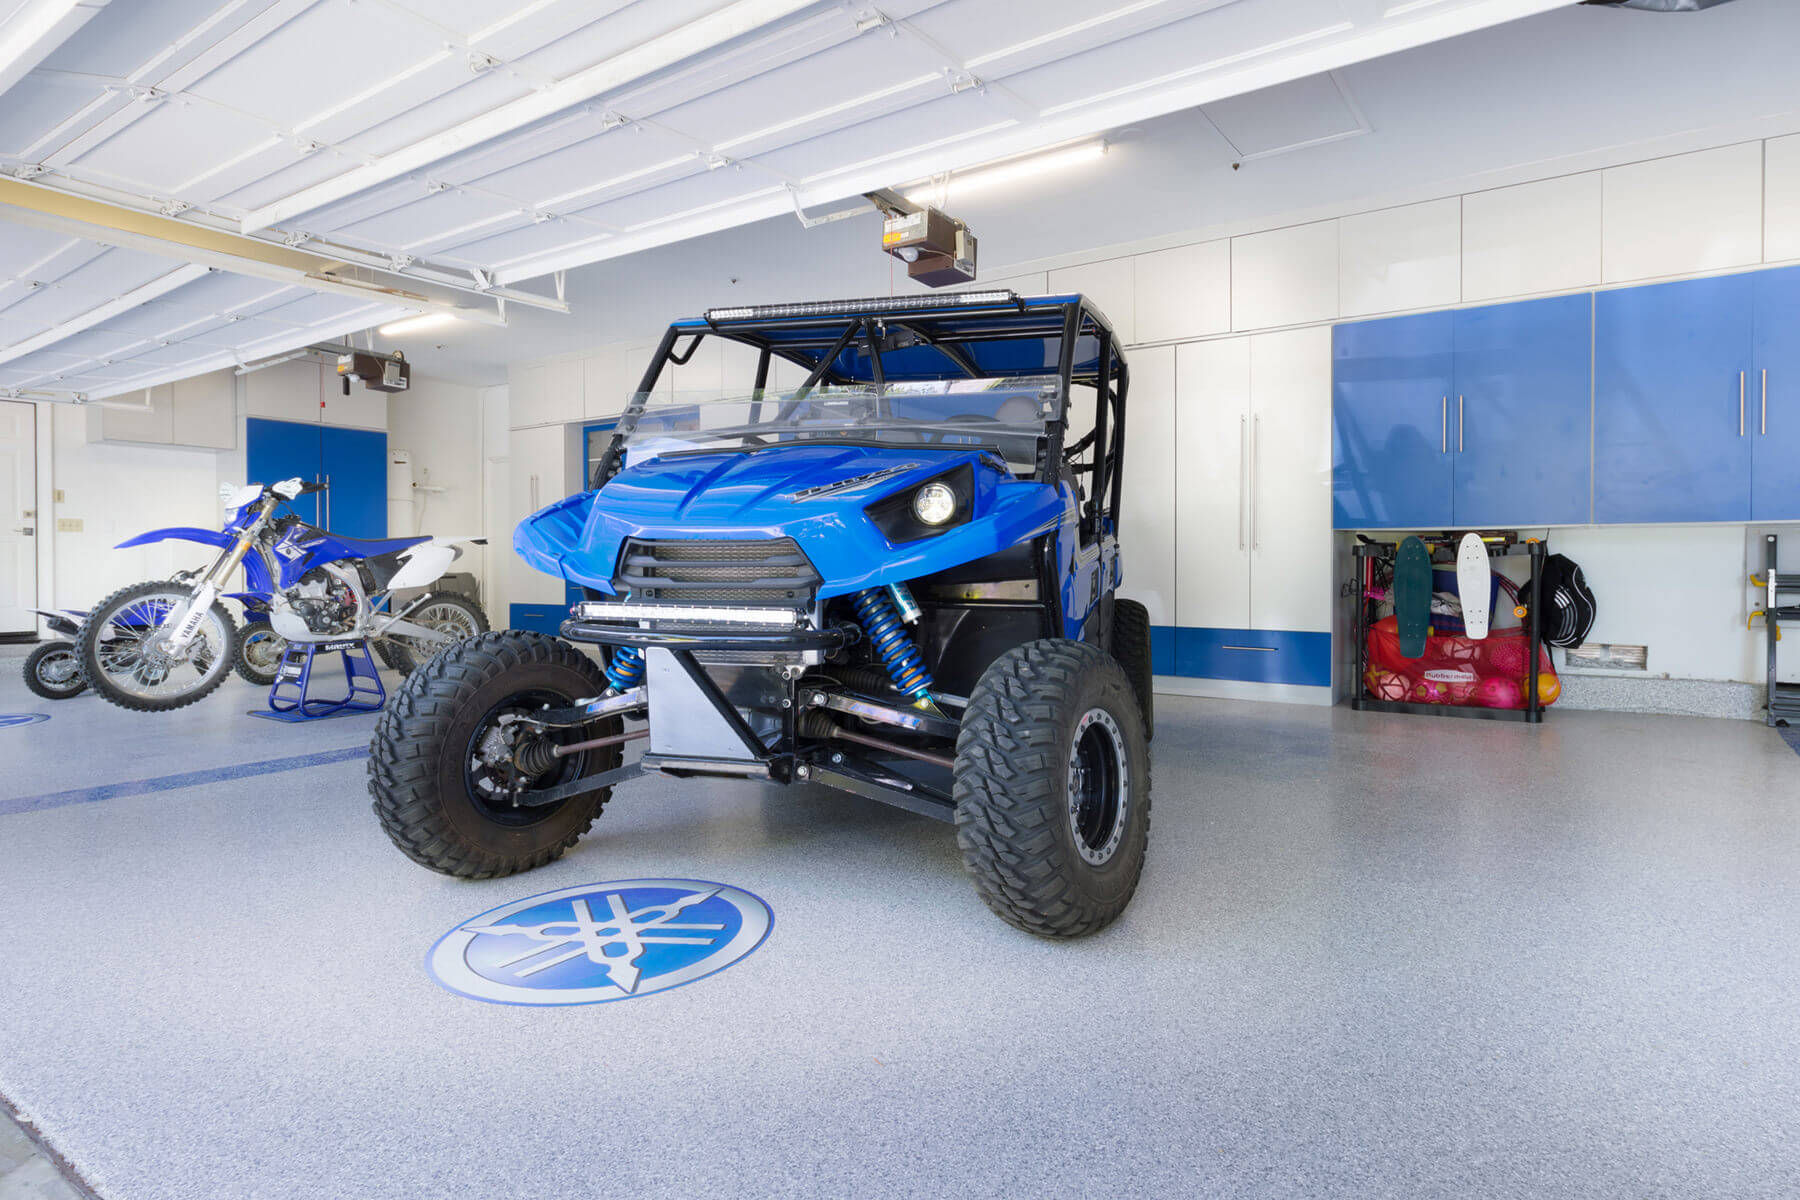 This garage filled with blue and white high gloss melamine cabinets match colors with the blue-colored vehicles.